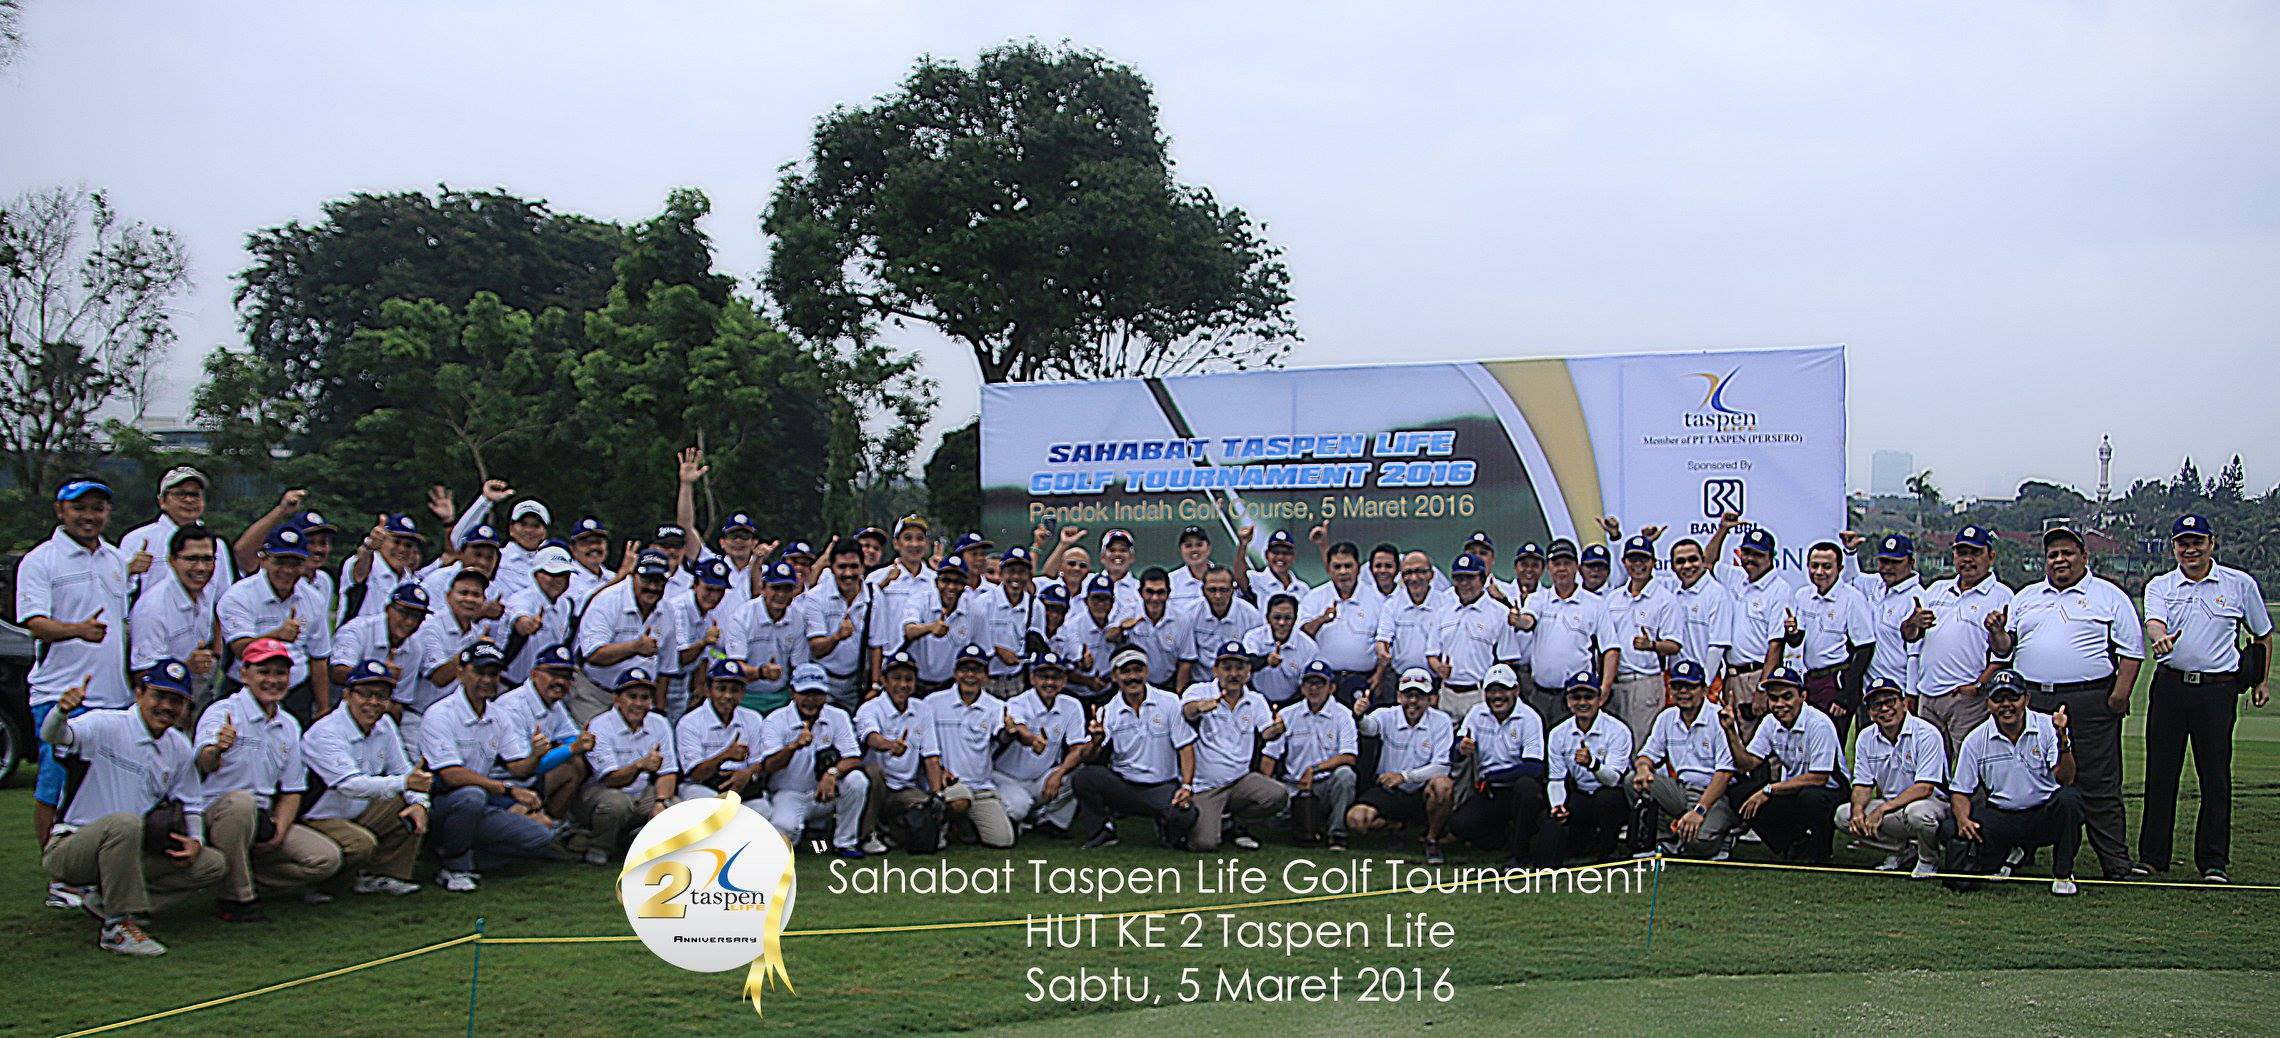 SAHABAT TASPEN LIFE GOLF TOURNAMENT HUT TASPEN LIFE KE 2